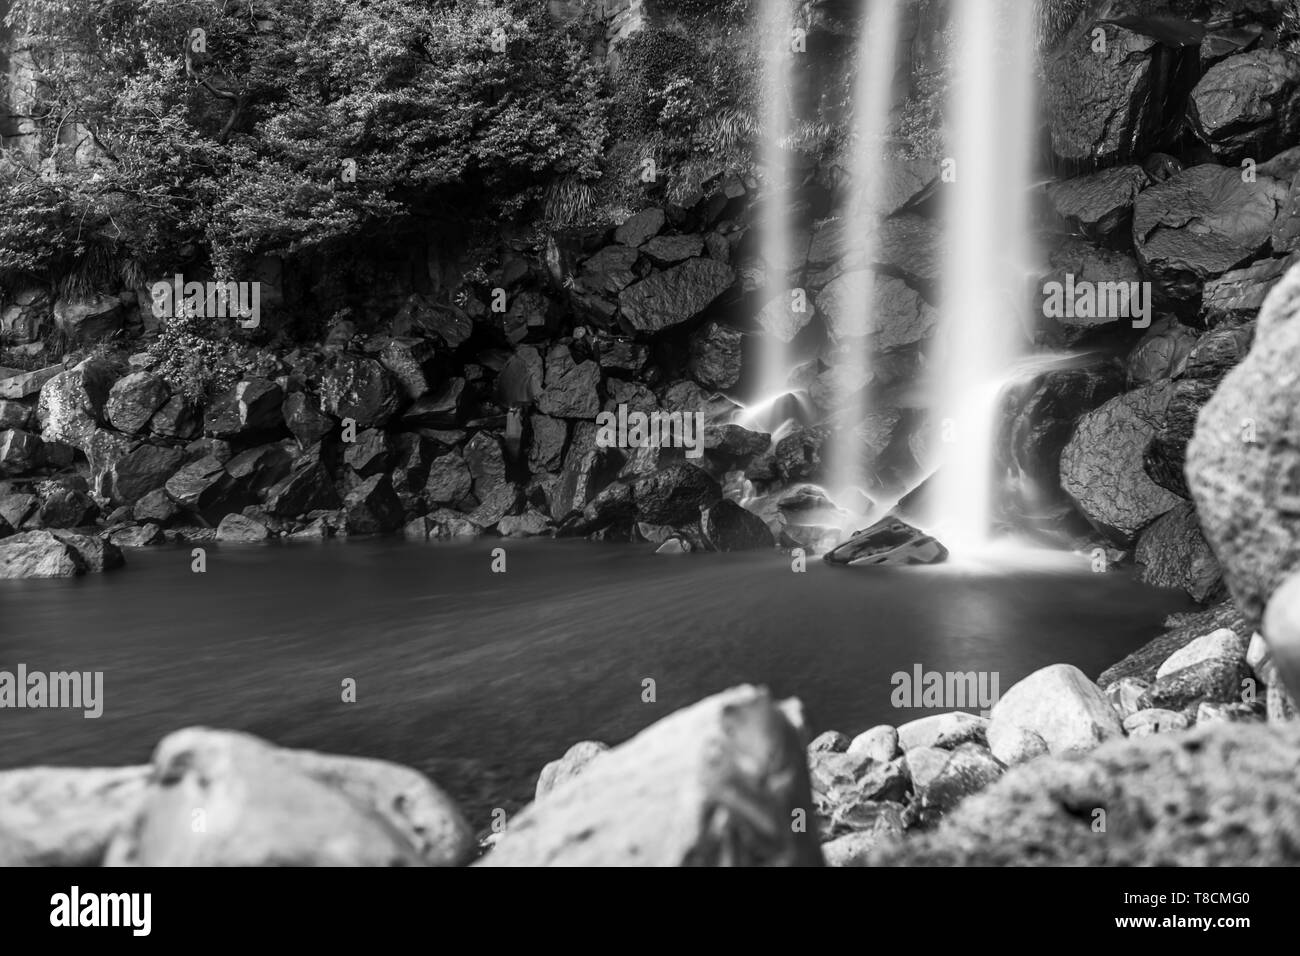 black and white landscape of Jeongbang waterfall in Jeju, South Korea - Stock Image